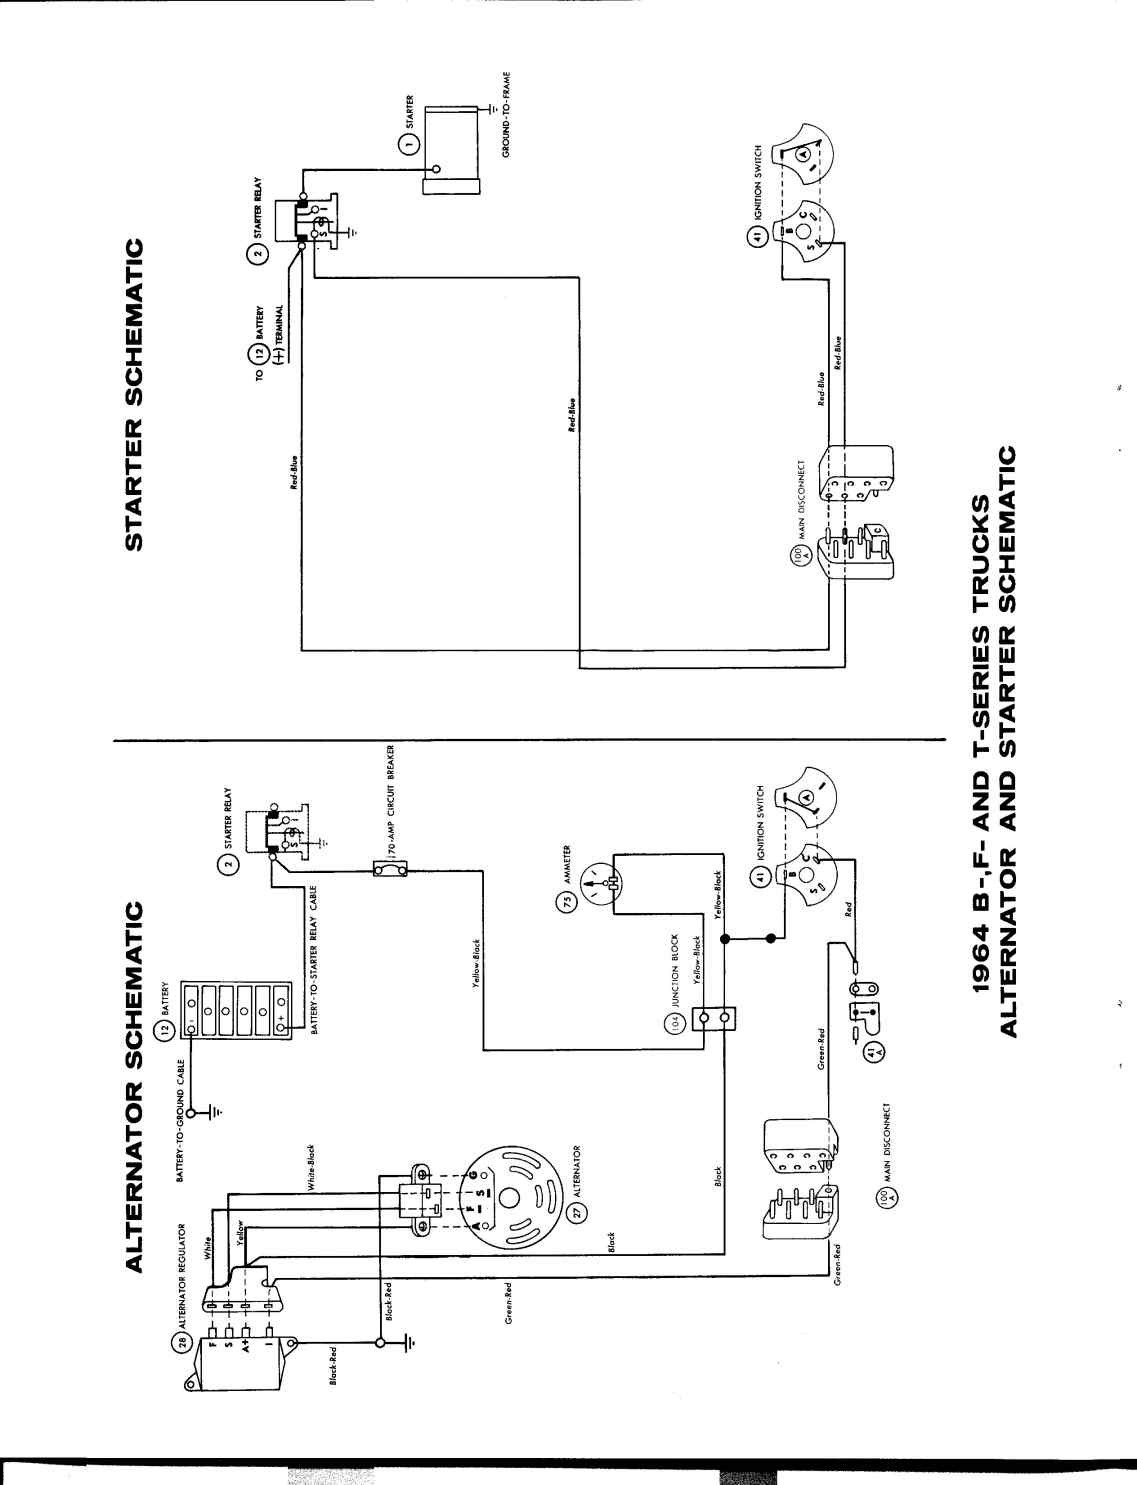 How to Wire A Starter Switch Diagram Unique Starter Motor solenoid Wiring Diagram Hd Dump